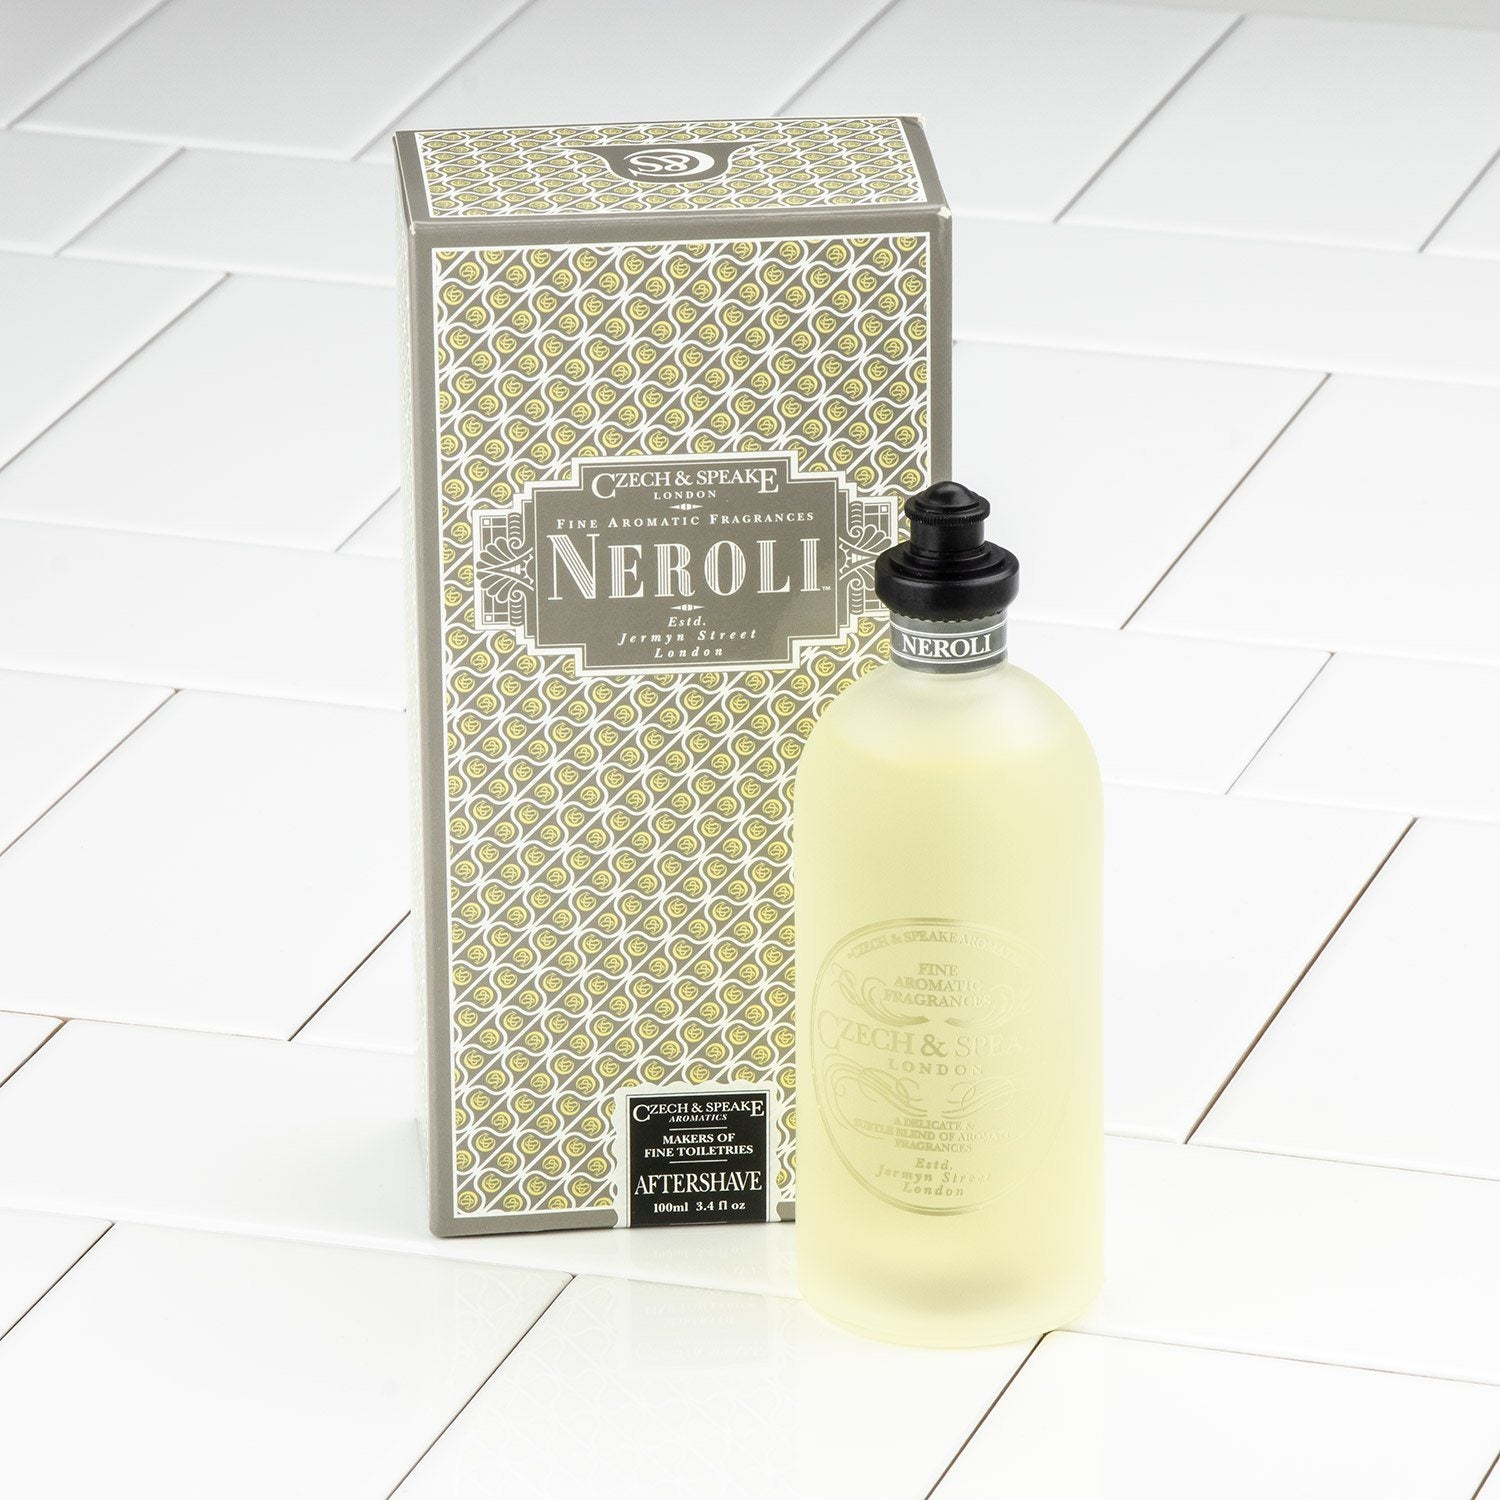 Czech & Speake Neroli Aftershave